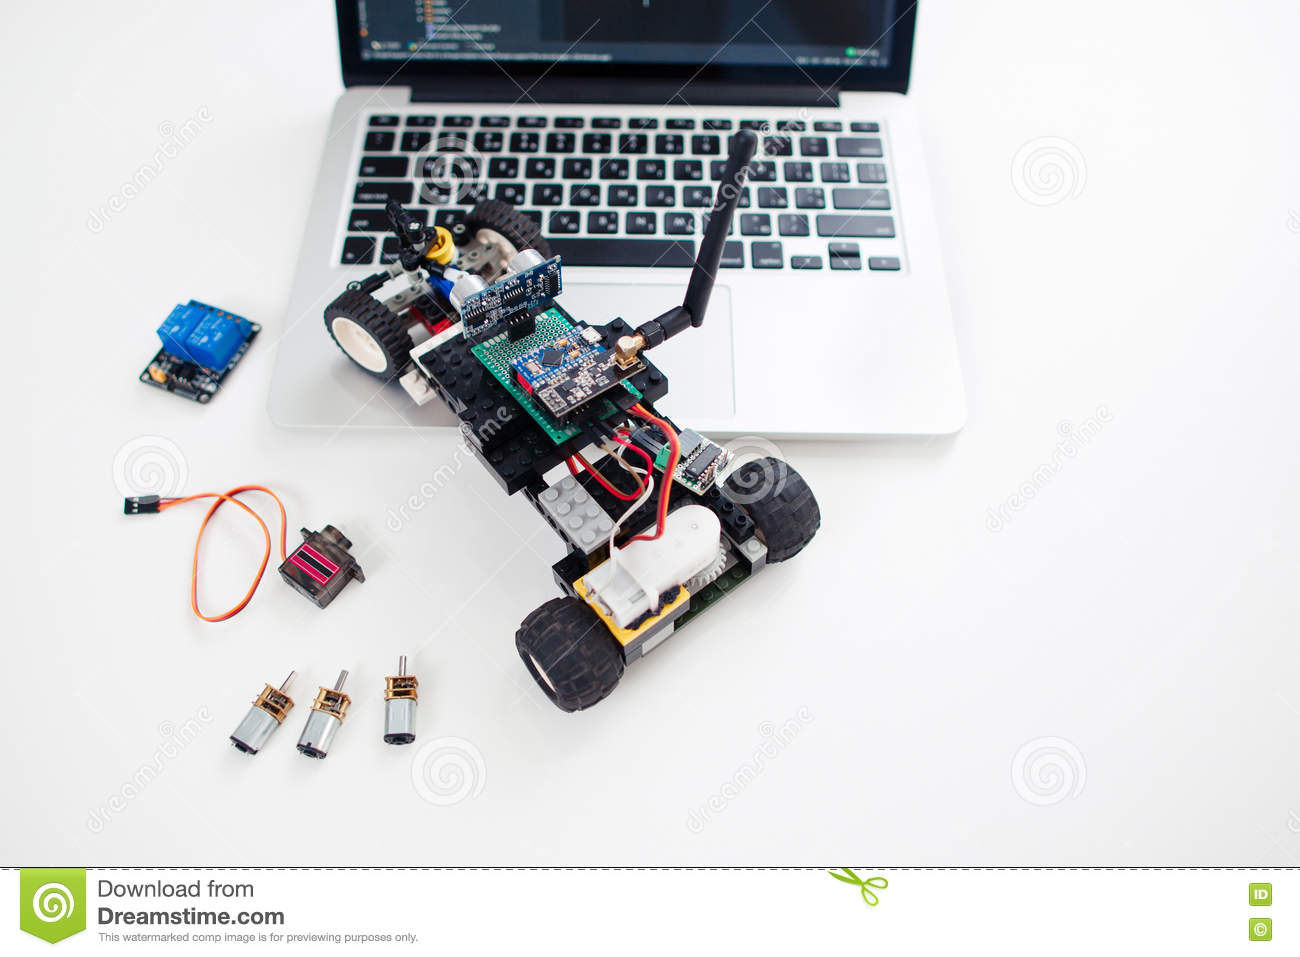 Rc car made on base of microcontroller editorial stock